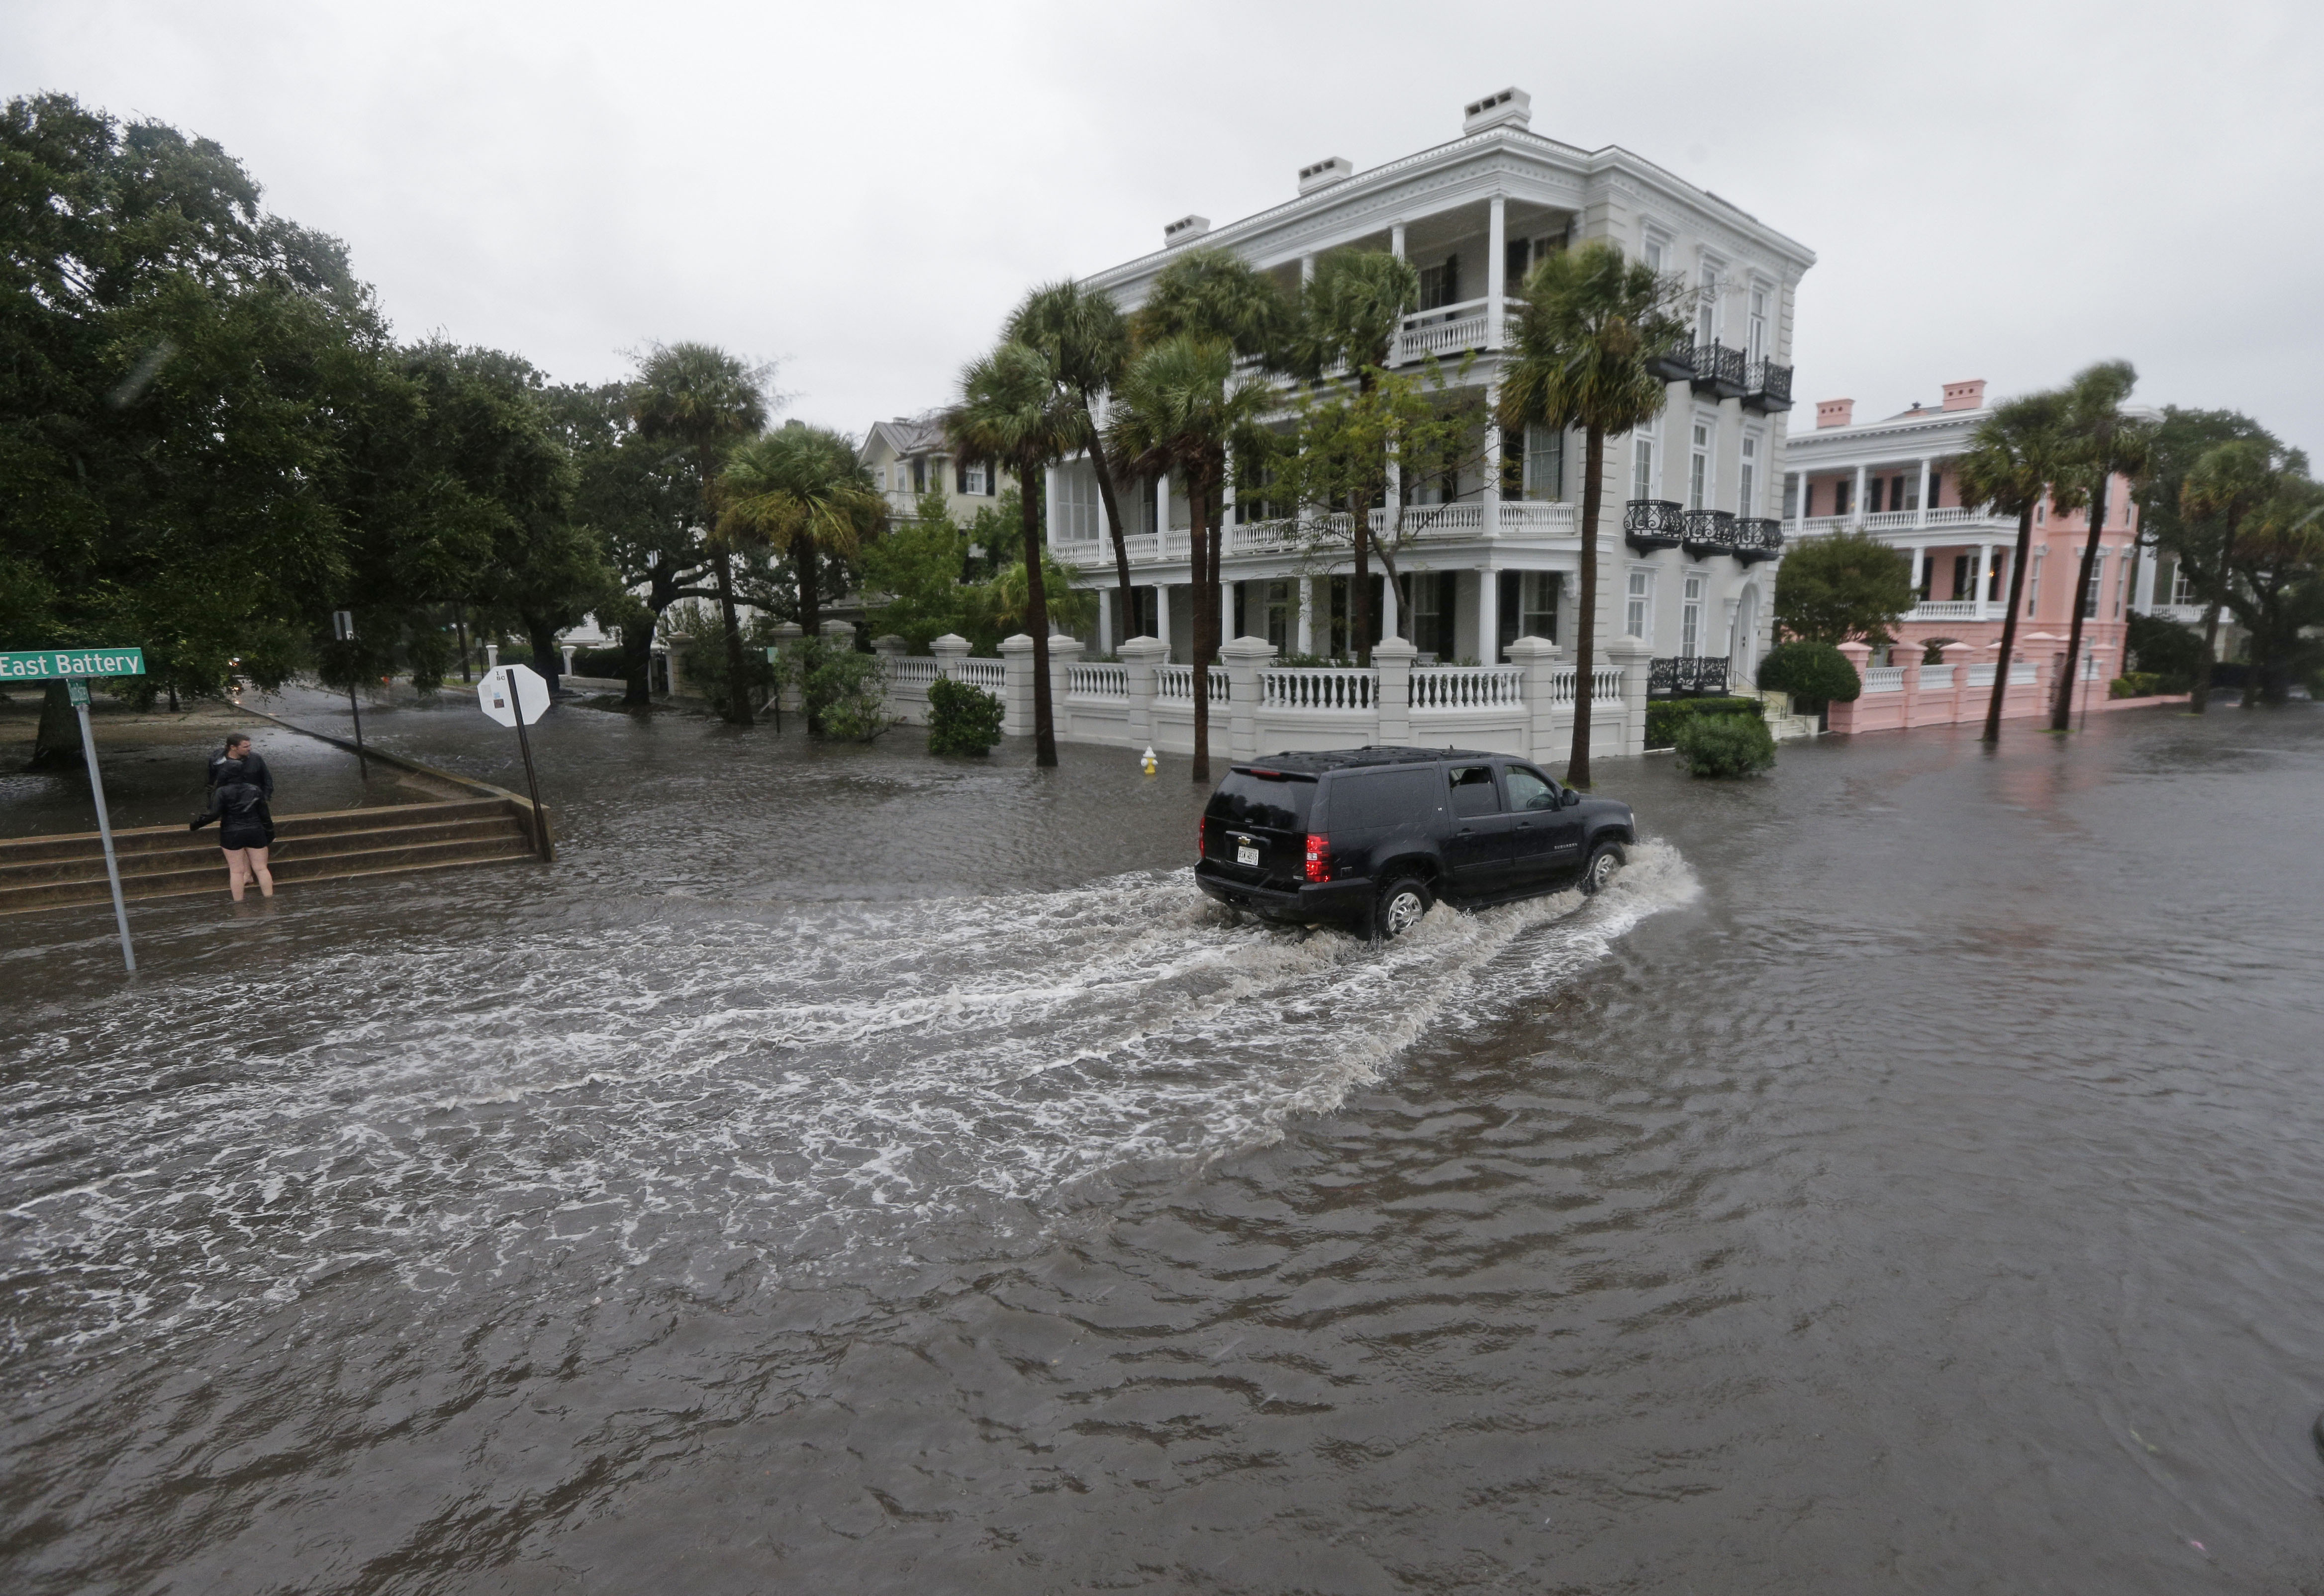 In this Oct. 3, 2015, file photo, a driver takes his truck through a flooded street in Charleston, S.C. Historic coastal cities in the Southeast U.S. have survived disease outbreaks, wars and hurricanes over the past three centuries. Now they are trying to figure how to survive rising seas from climate change.